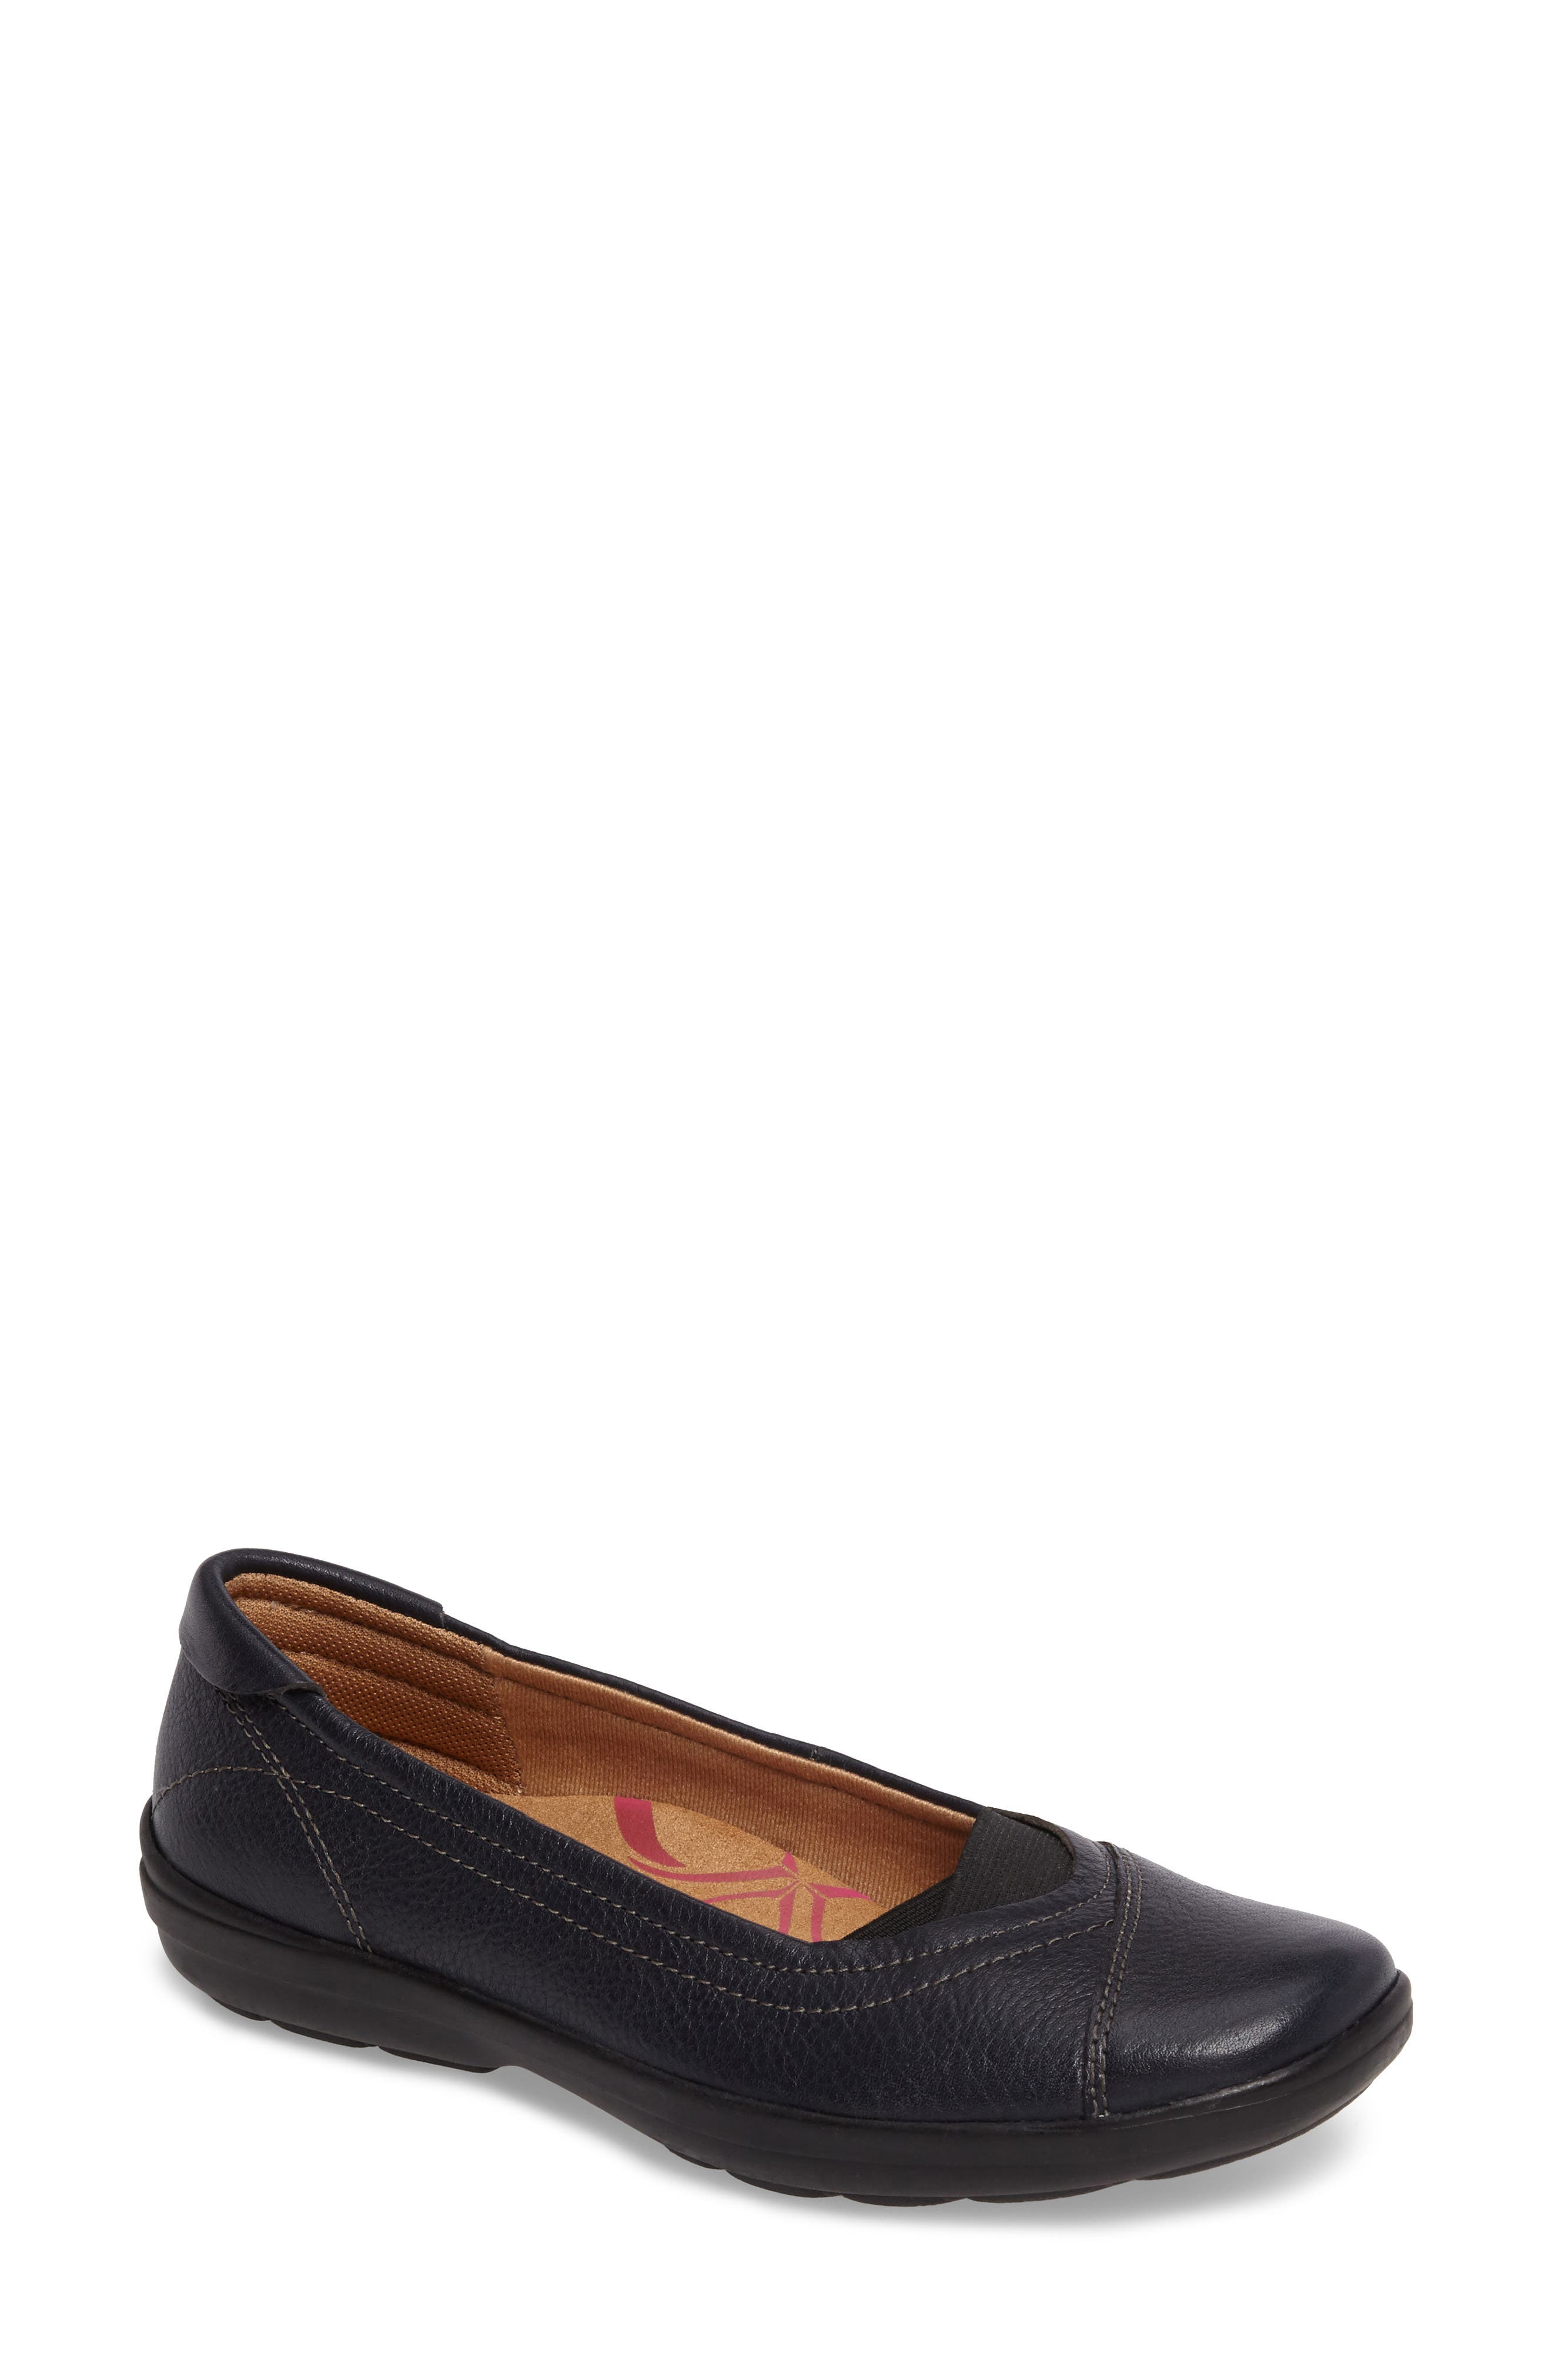 Renee Flat,                         Main,                         color, Navy Leather